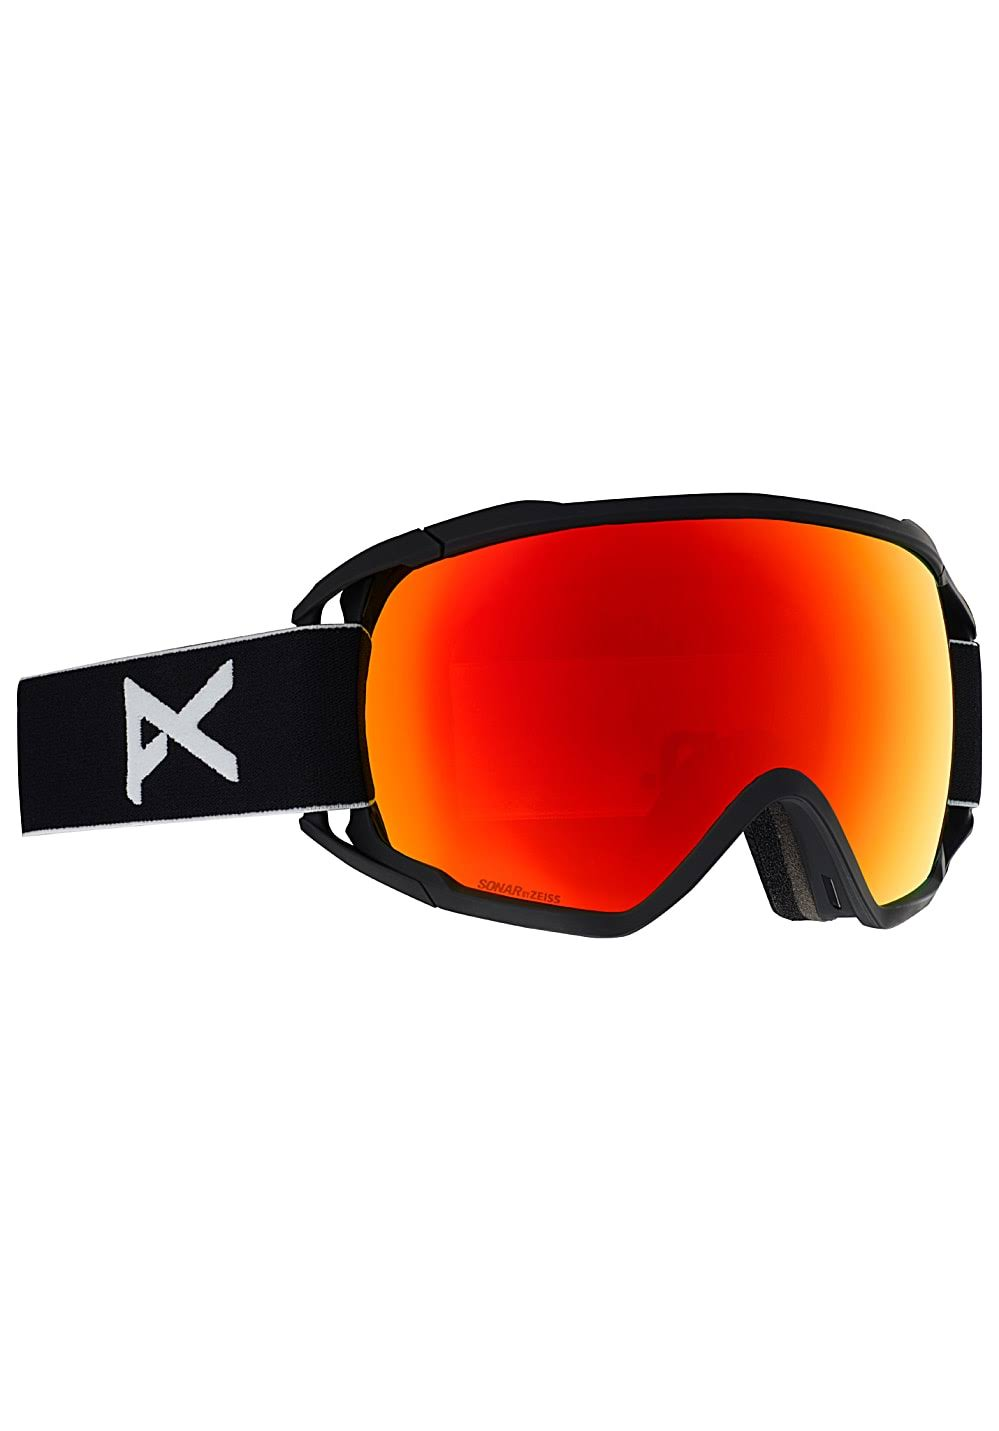 Goggles Anon Circuit Black Sonar Red